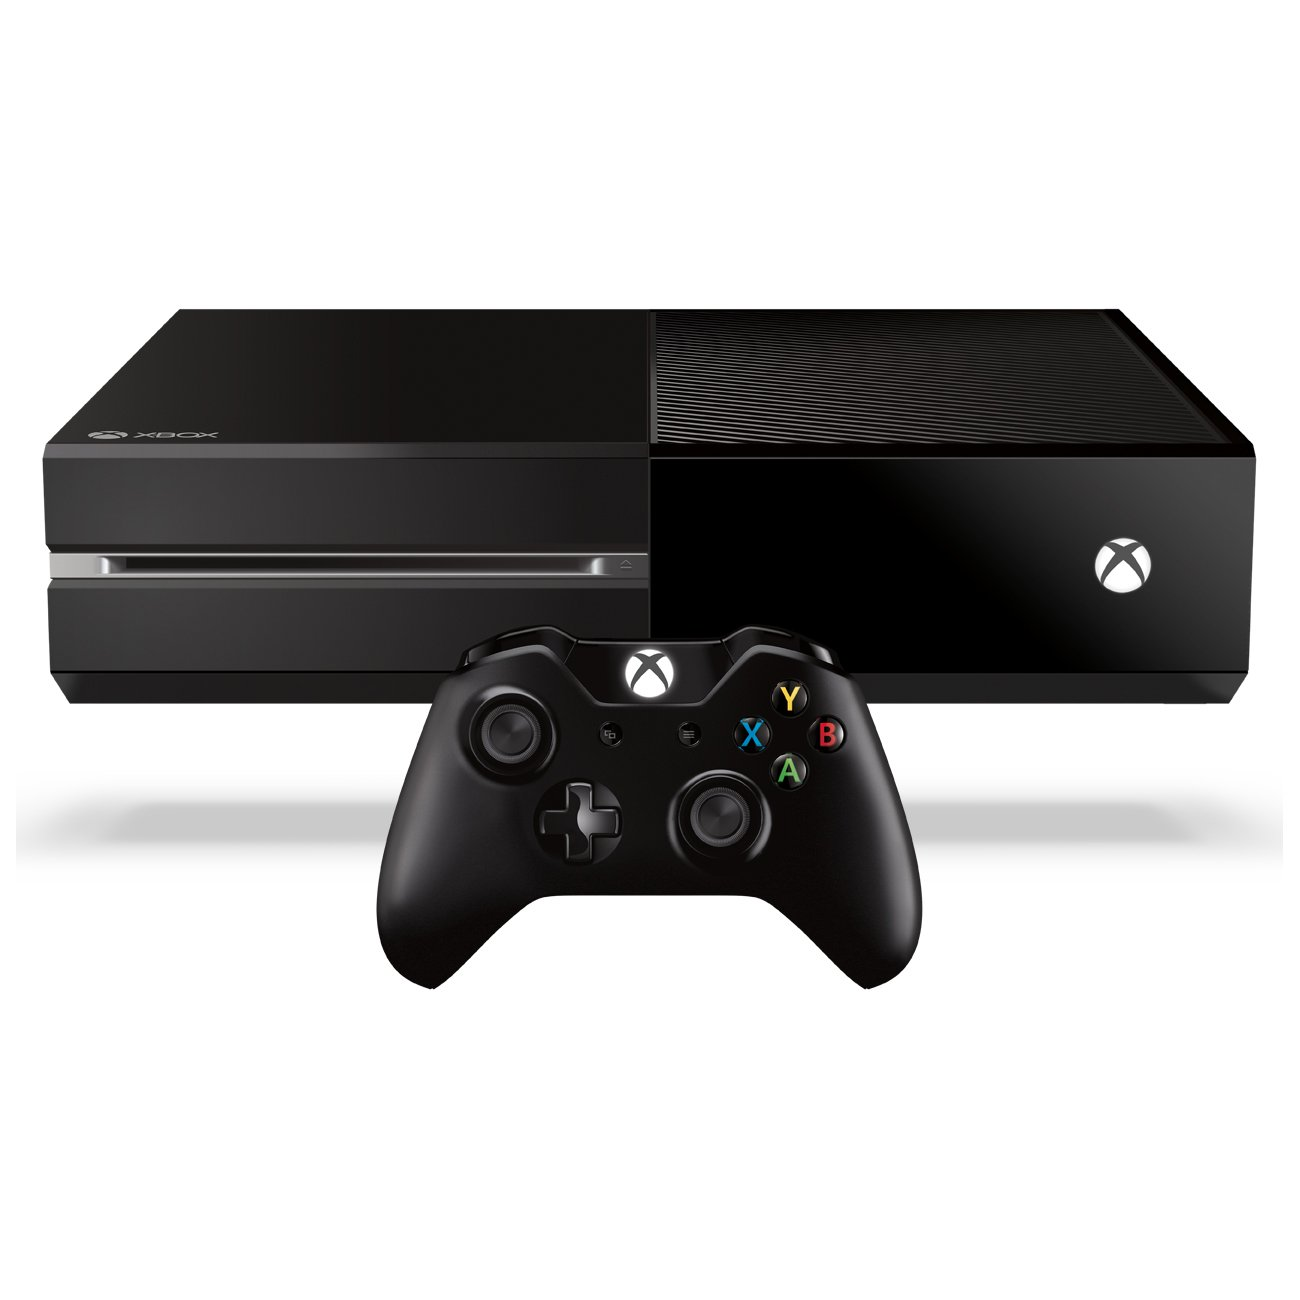 Microsoft Xbox One 1 TB, Special Edition 'Matte Black' (Certified Refurbished) by Microsoft